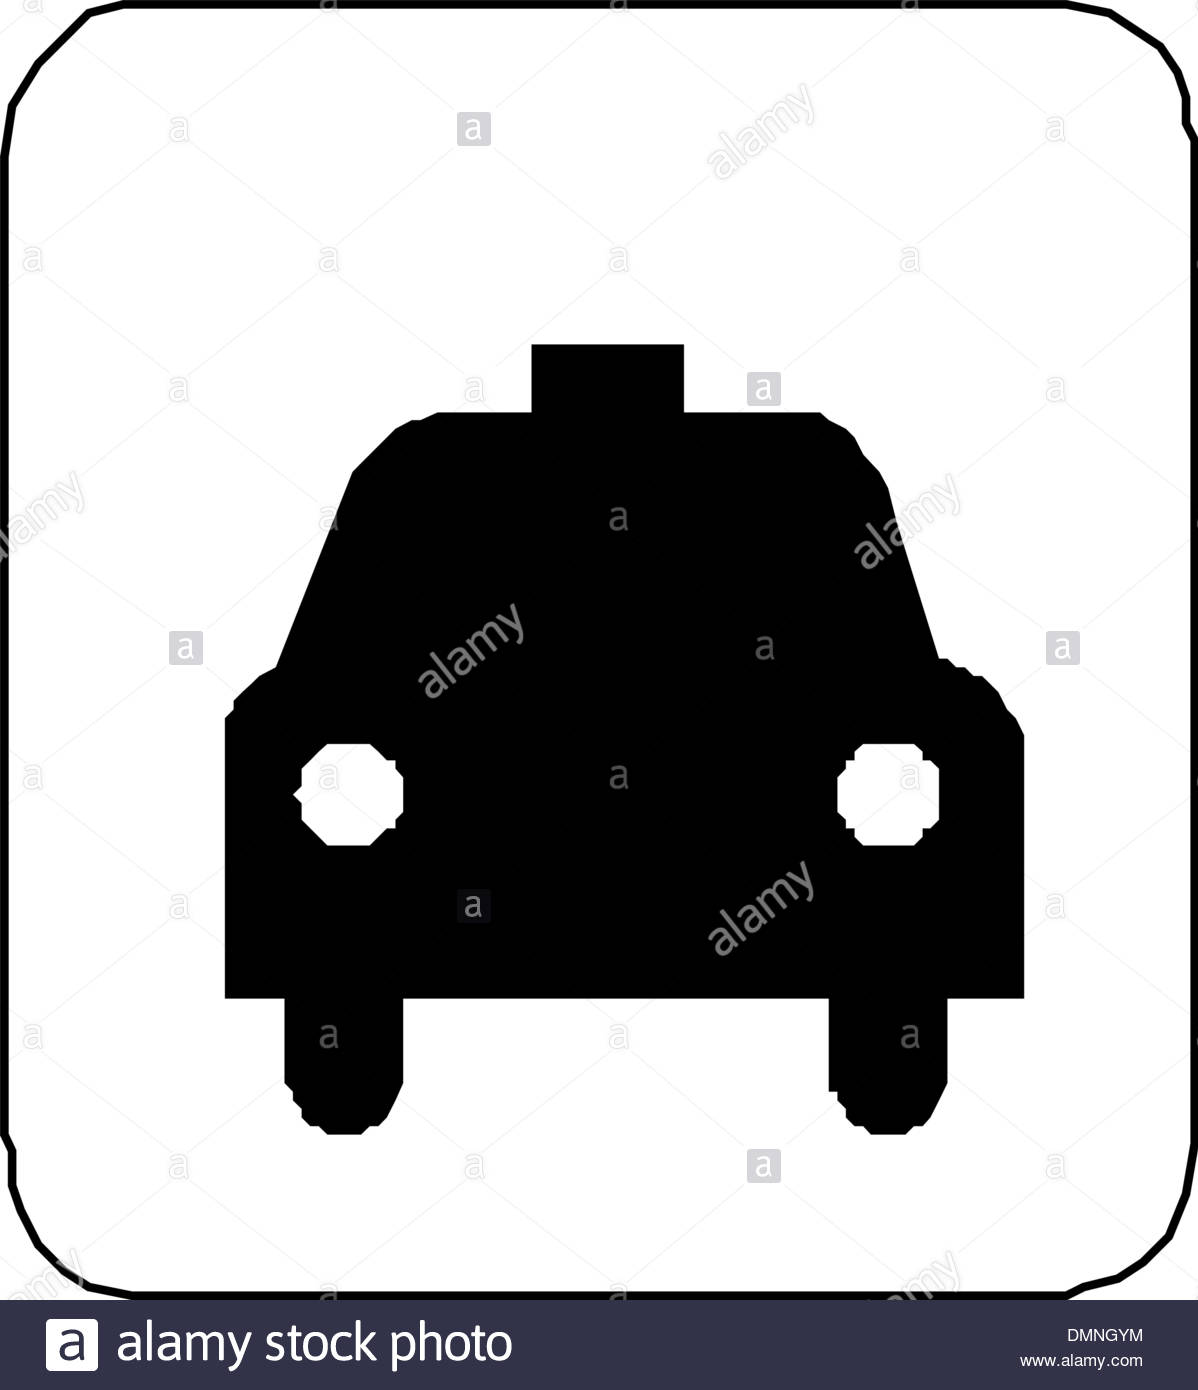 1198x1390 Black Silhouette On A Taxi Stock Vector Art Amp Illustration, Vector